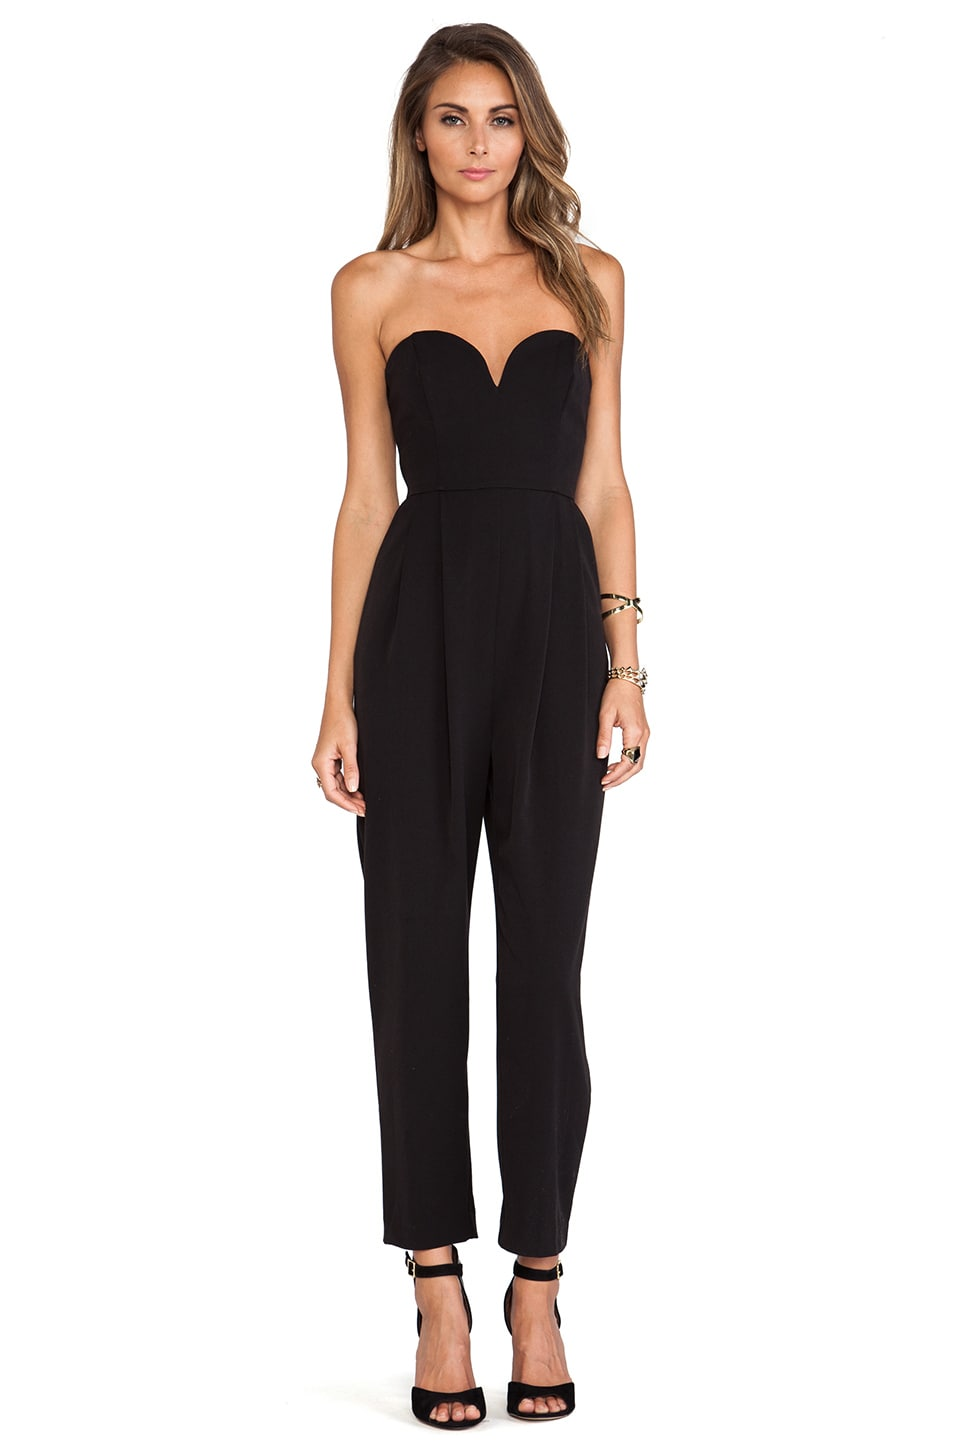 Shona Joy The Awakening Bustier Jumpsuit in Black